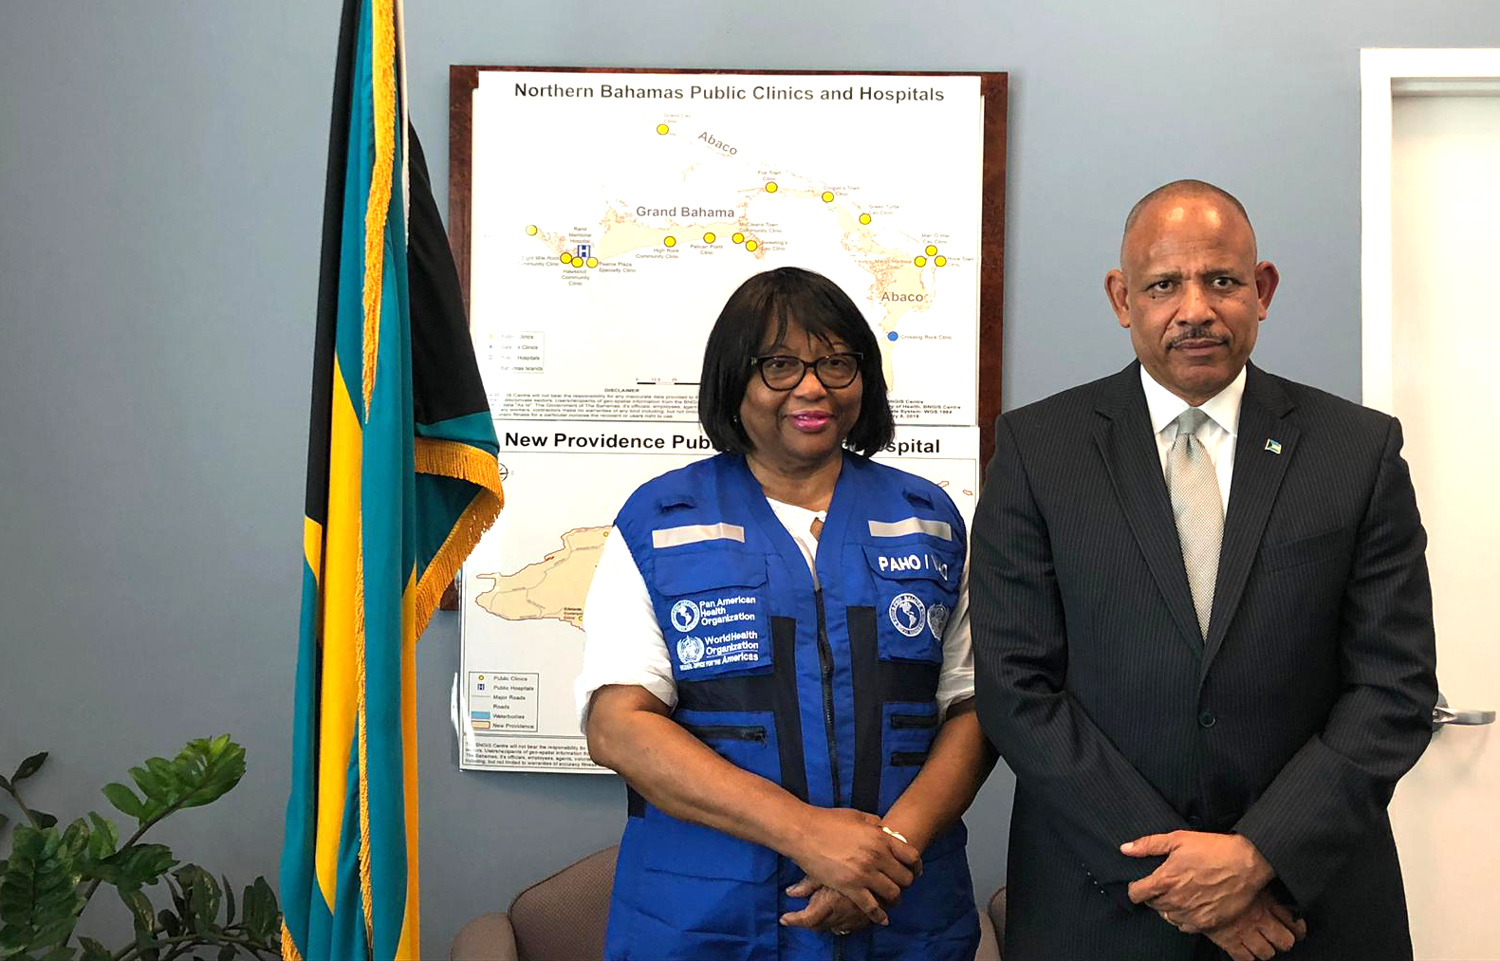 Dr. The Hon. Duane E.L Sands, Minister of Health of the Bahamas meets Dr. Carissa F. Etienne